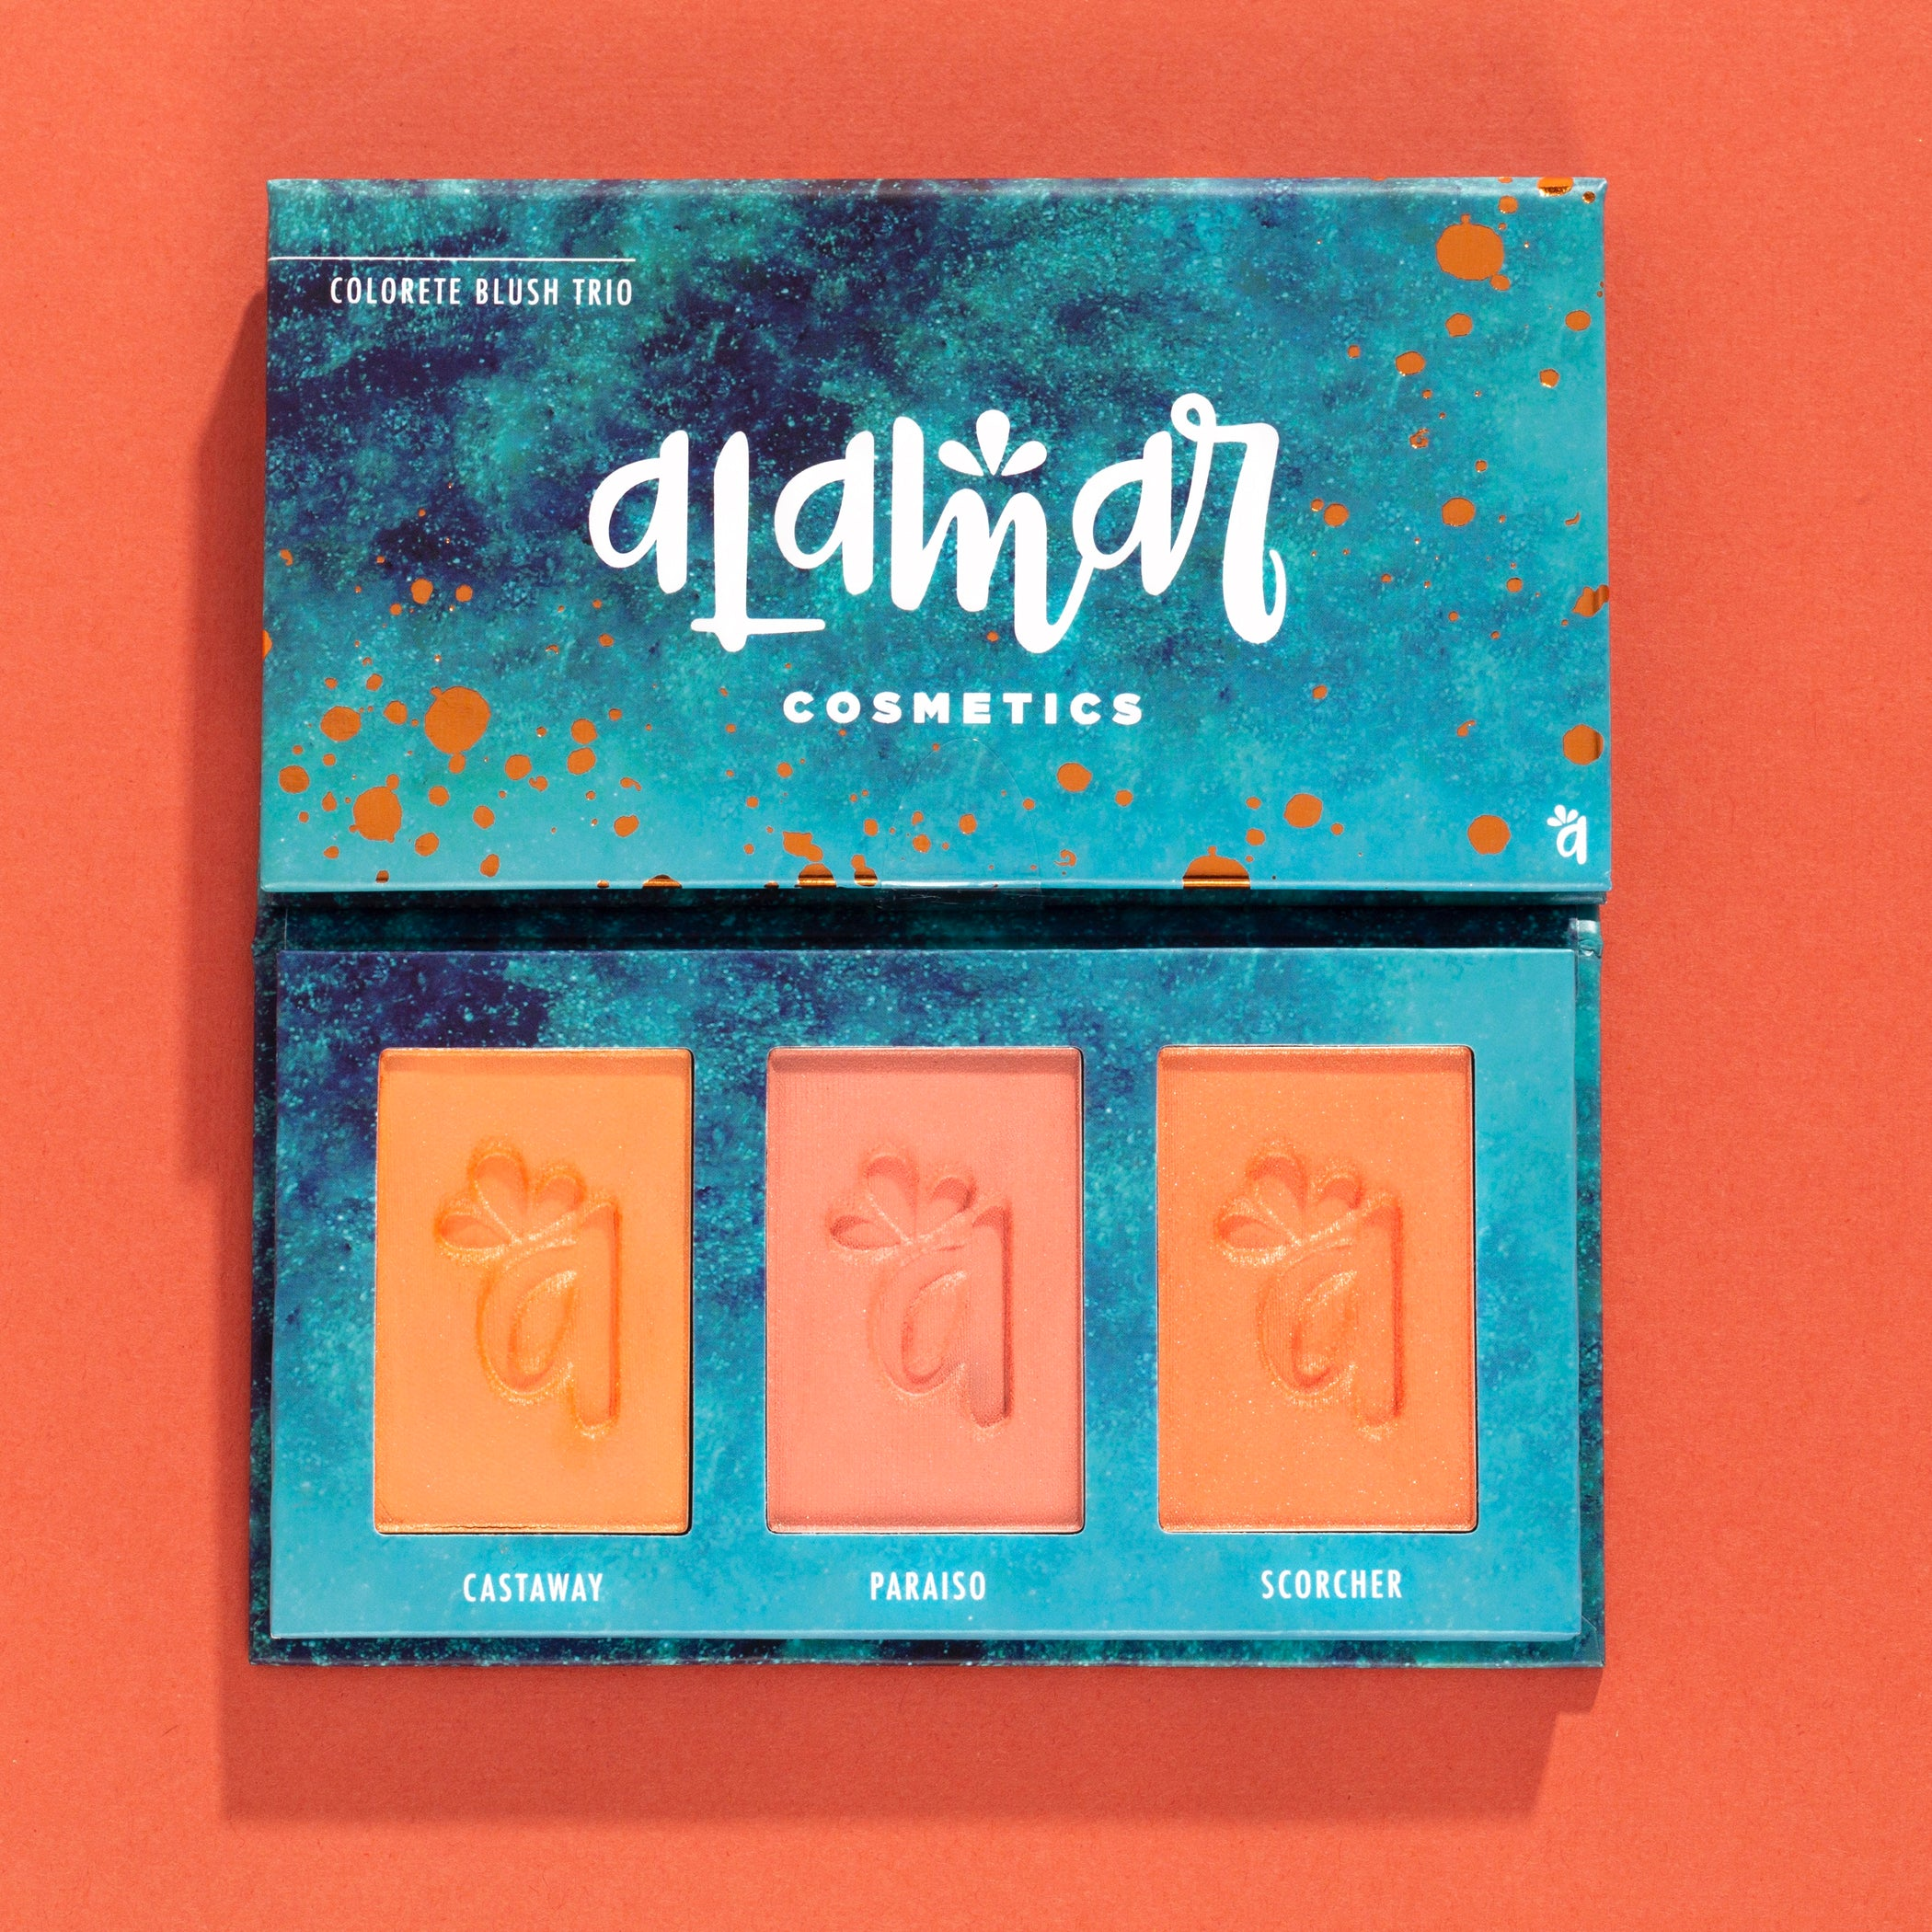 Alamar Cosmetics - Colorete Blush Trio, Fair/Light